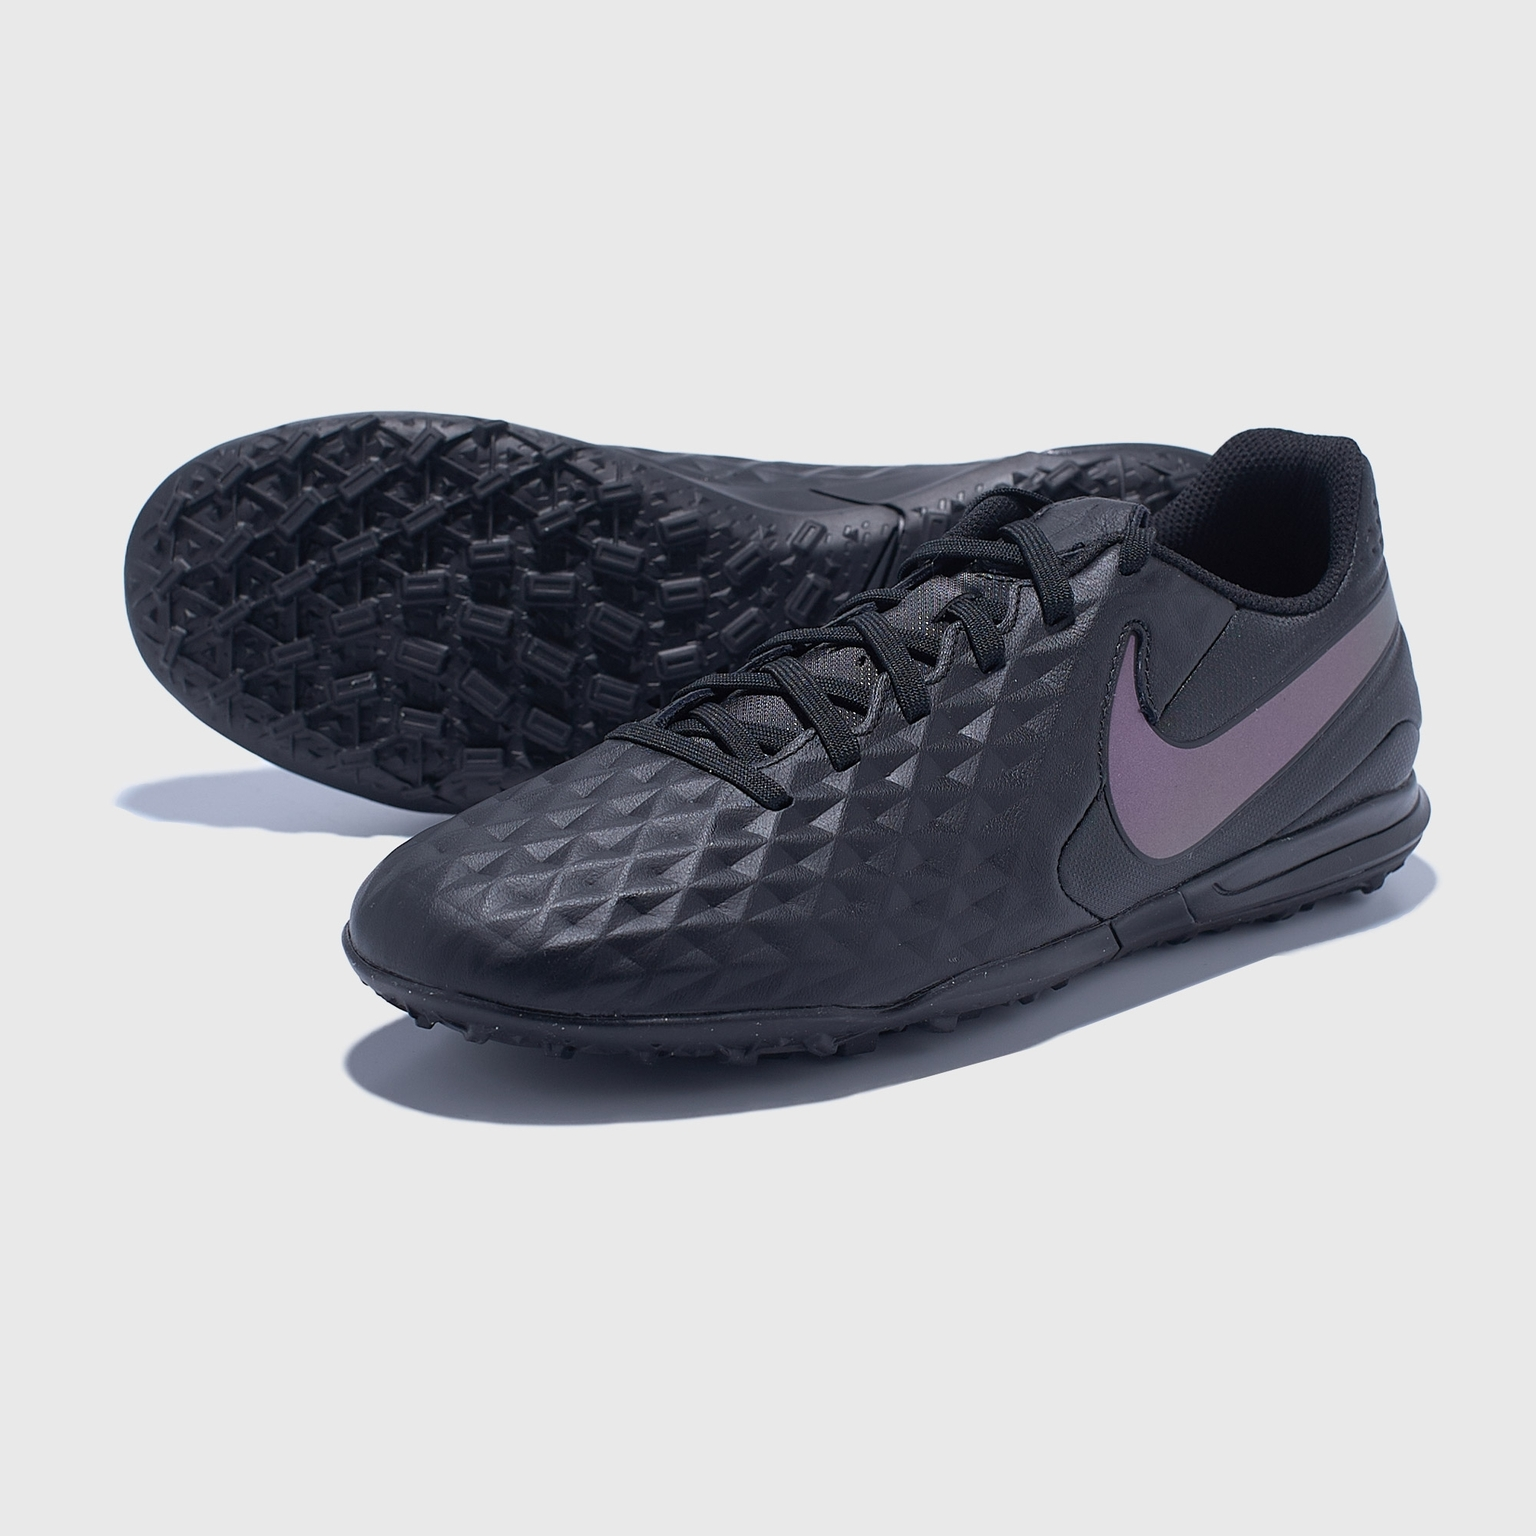 Шиповки Nike Legend 8 Academy TF AT6100-010 шиповки детские nike legend 8 academy tf at5736 606